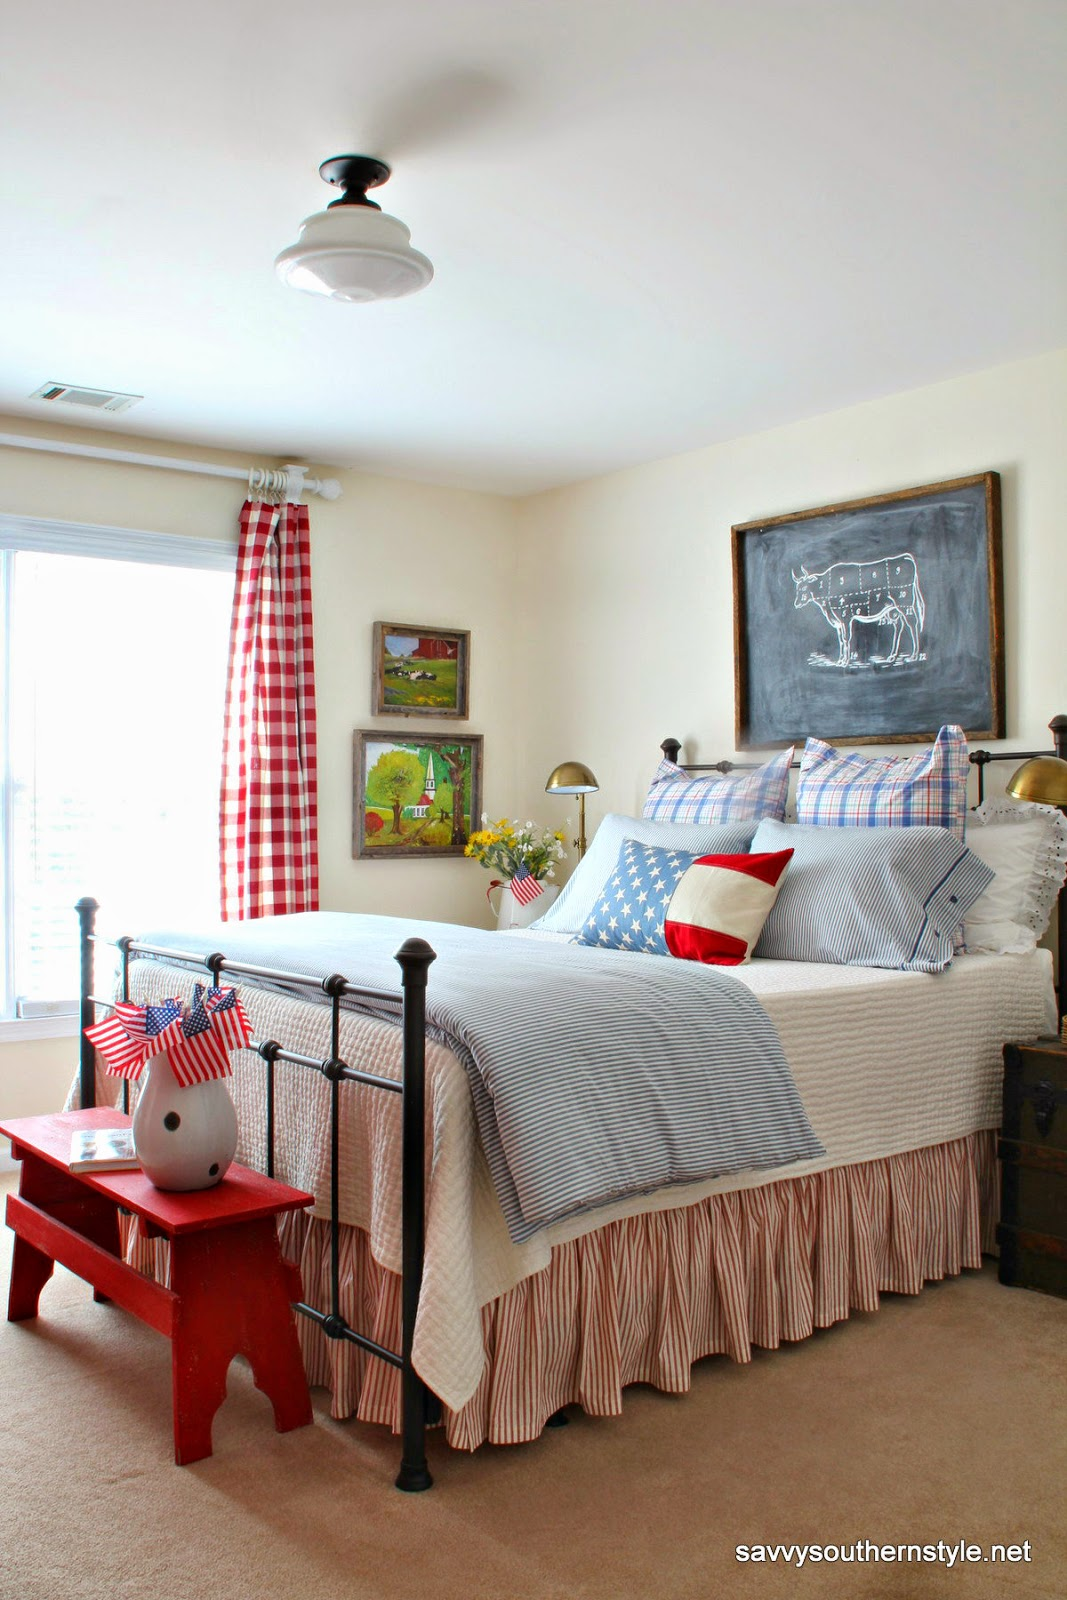 Savvy Southern Style : Remembering Red, White and Blue ...